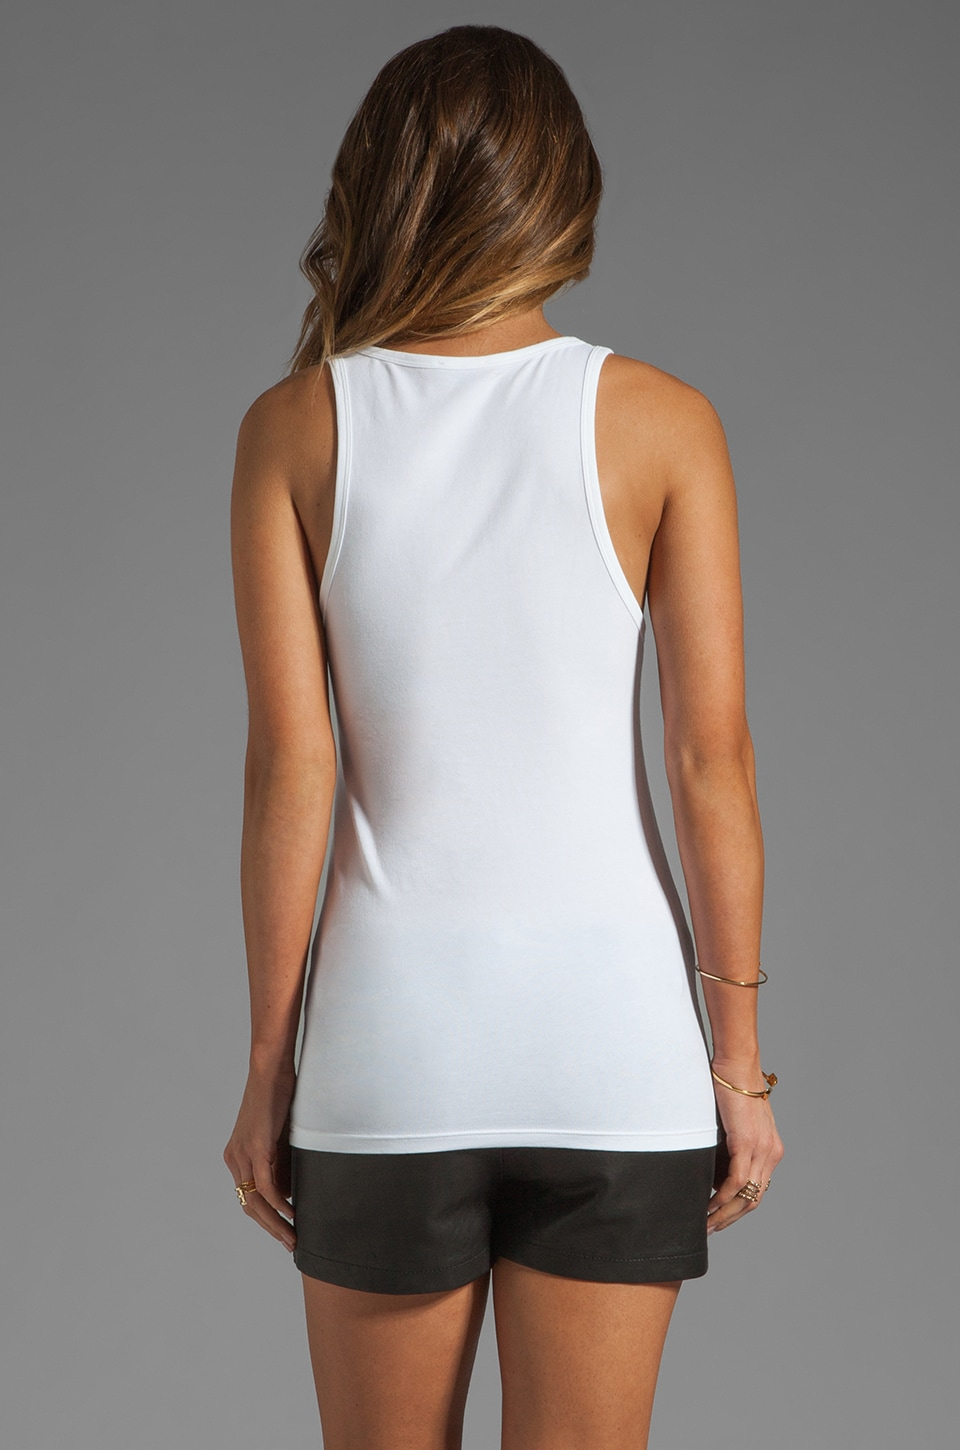 Theory Encase Jiante Tank in White